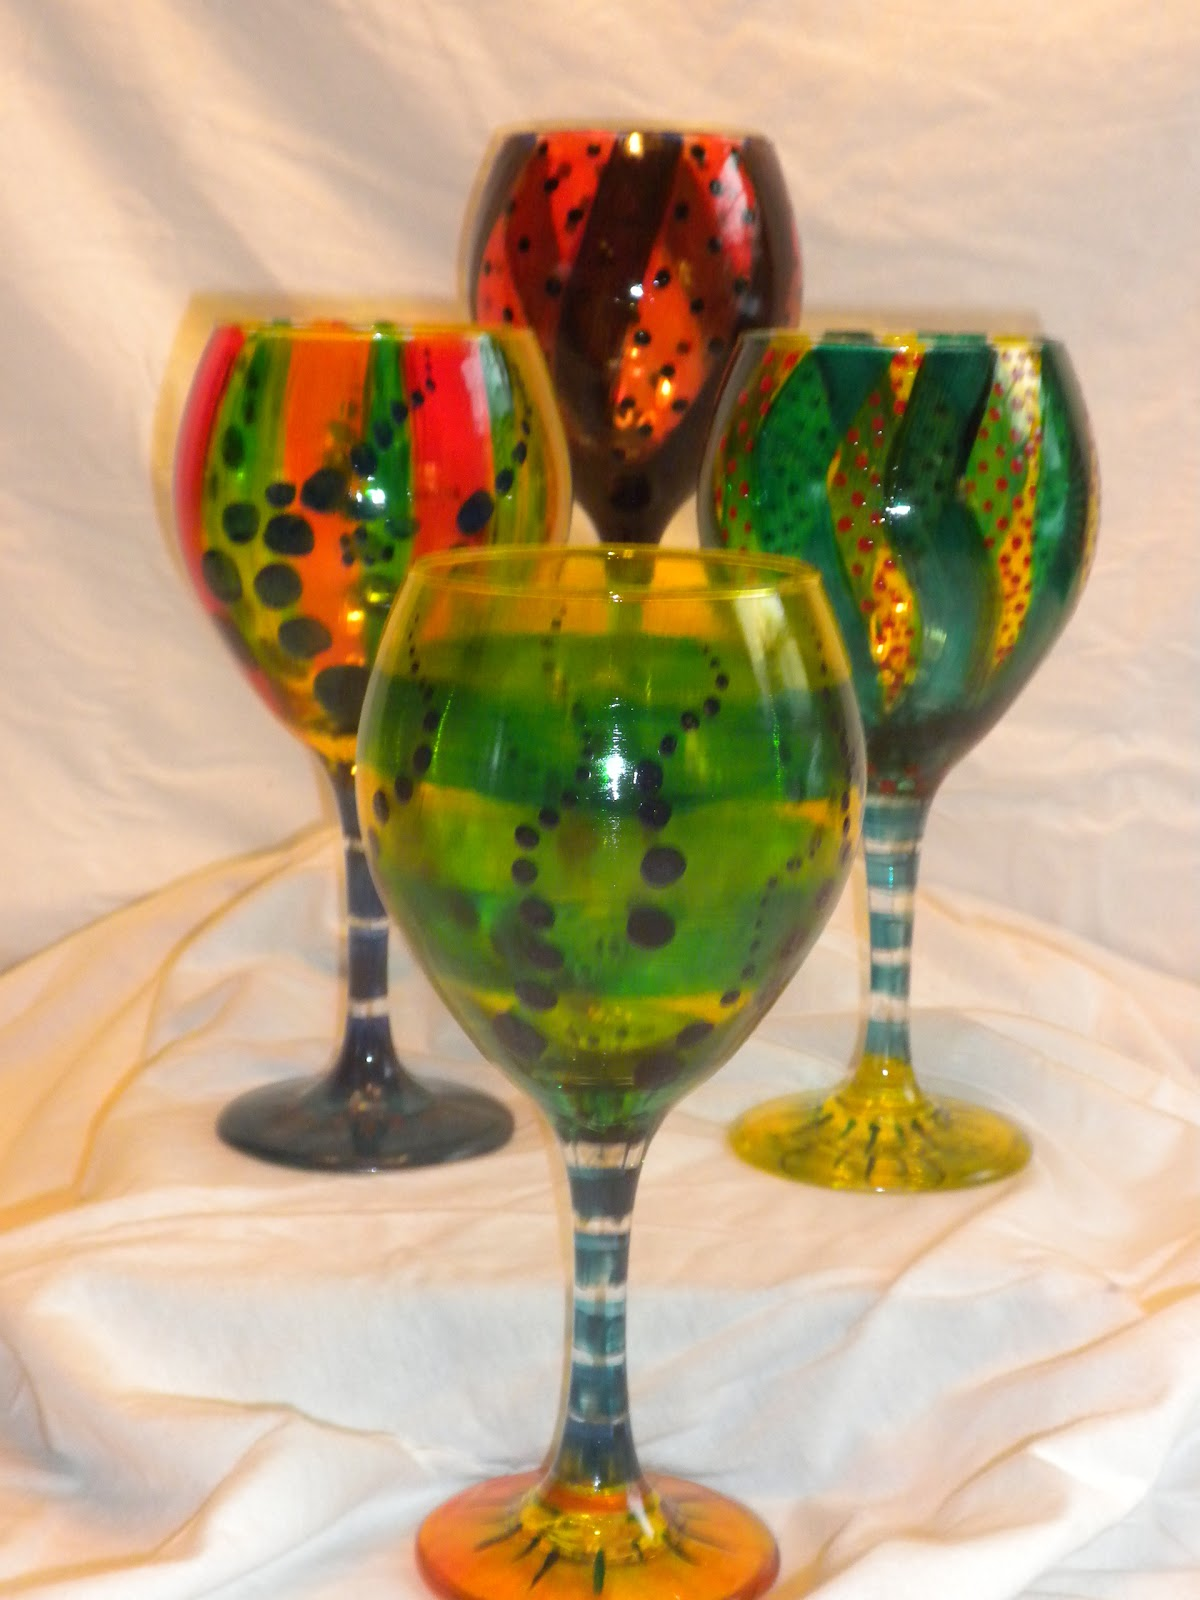 The potato sack hand painted wine glasses Images of painted wine glasses